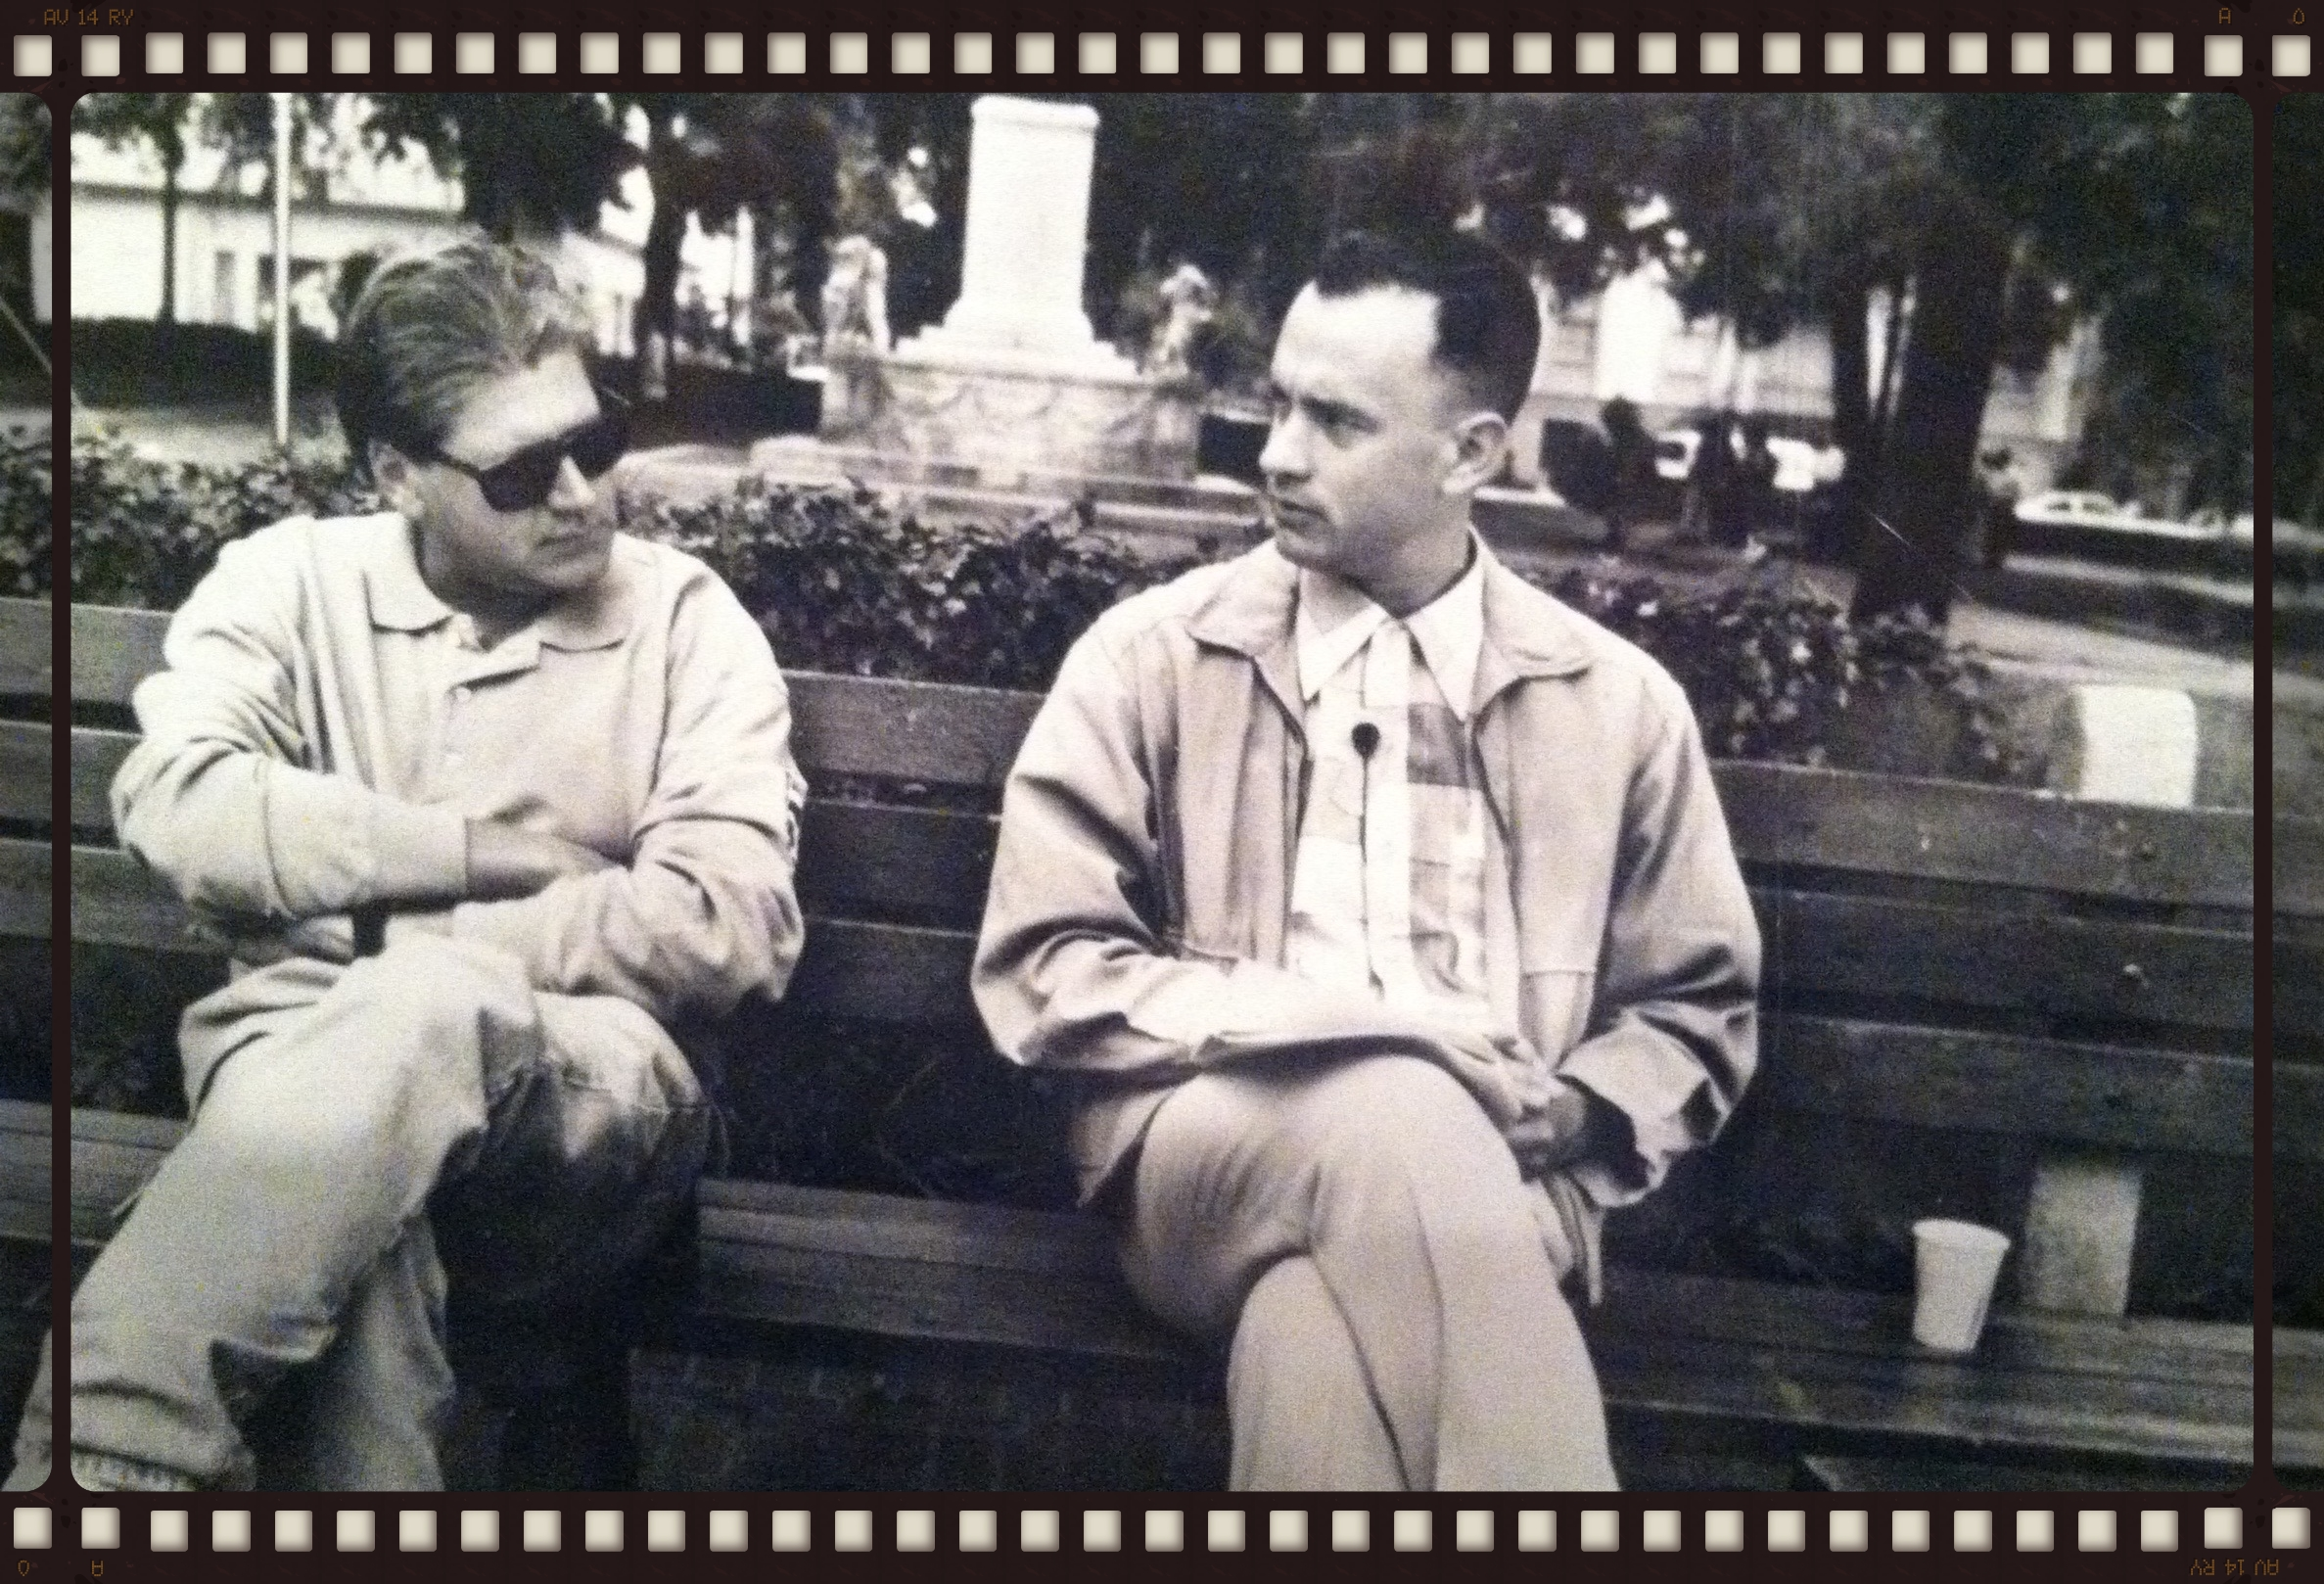 Tom Hanks and Director Robert Zemeckis take a break during the first day of Forrest Gump.